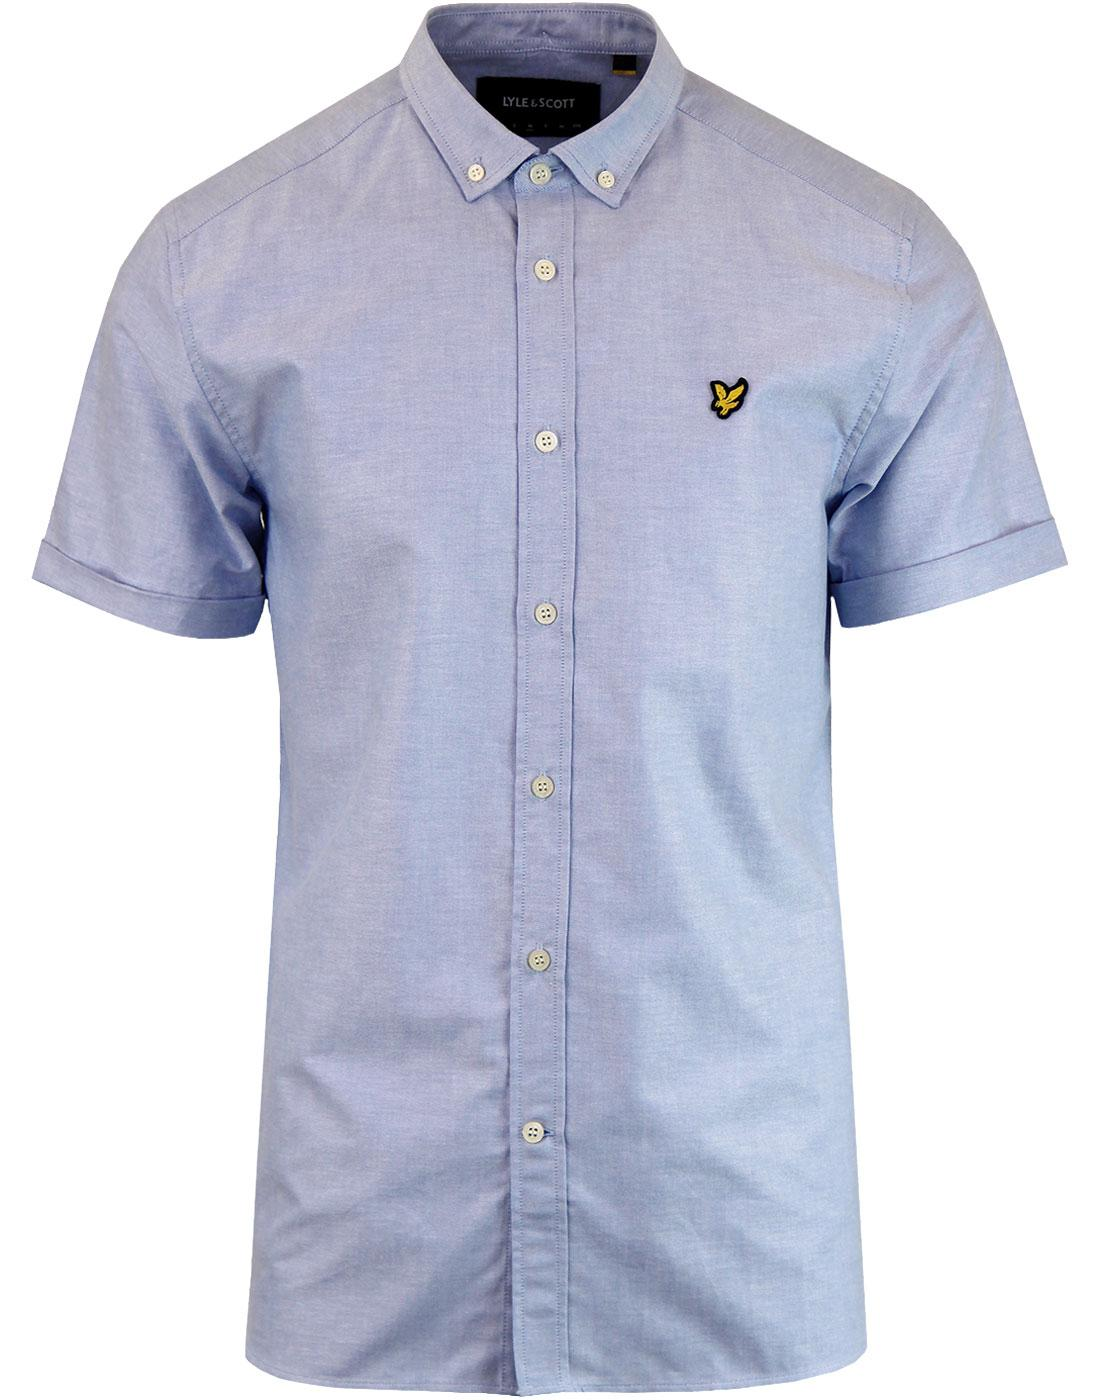 LYLE & SCOTT Button Down SS Oxford Shirt RIVIERA